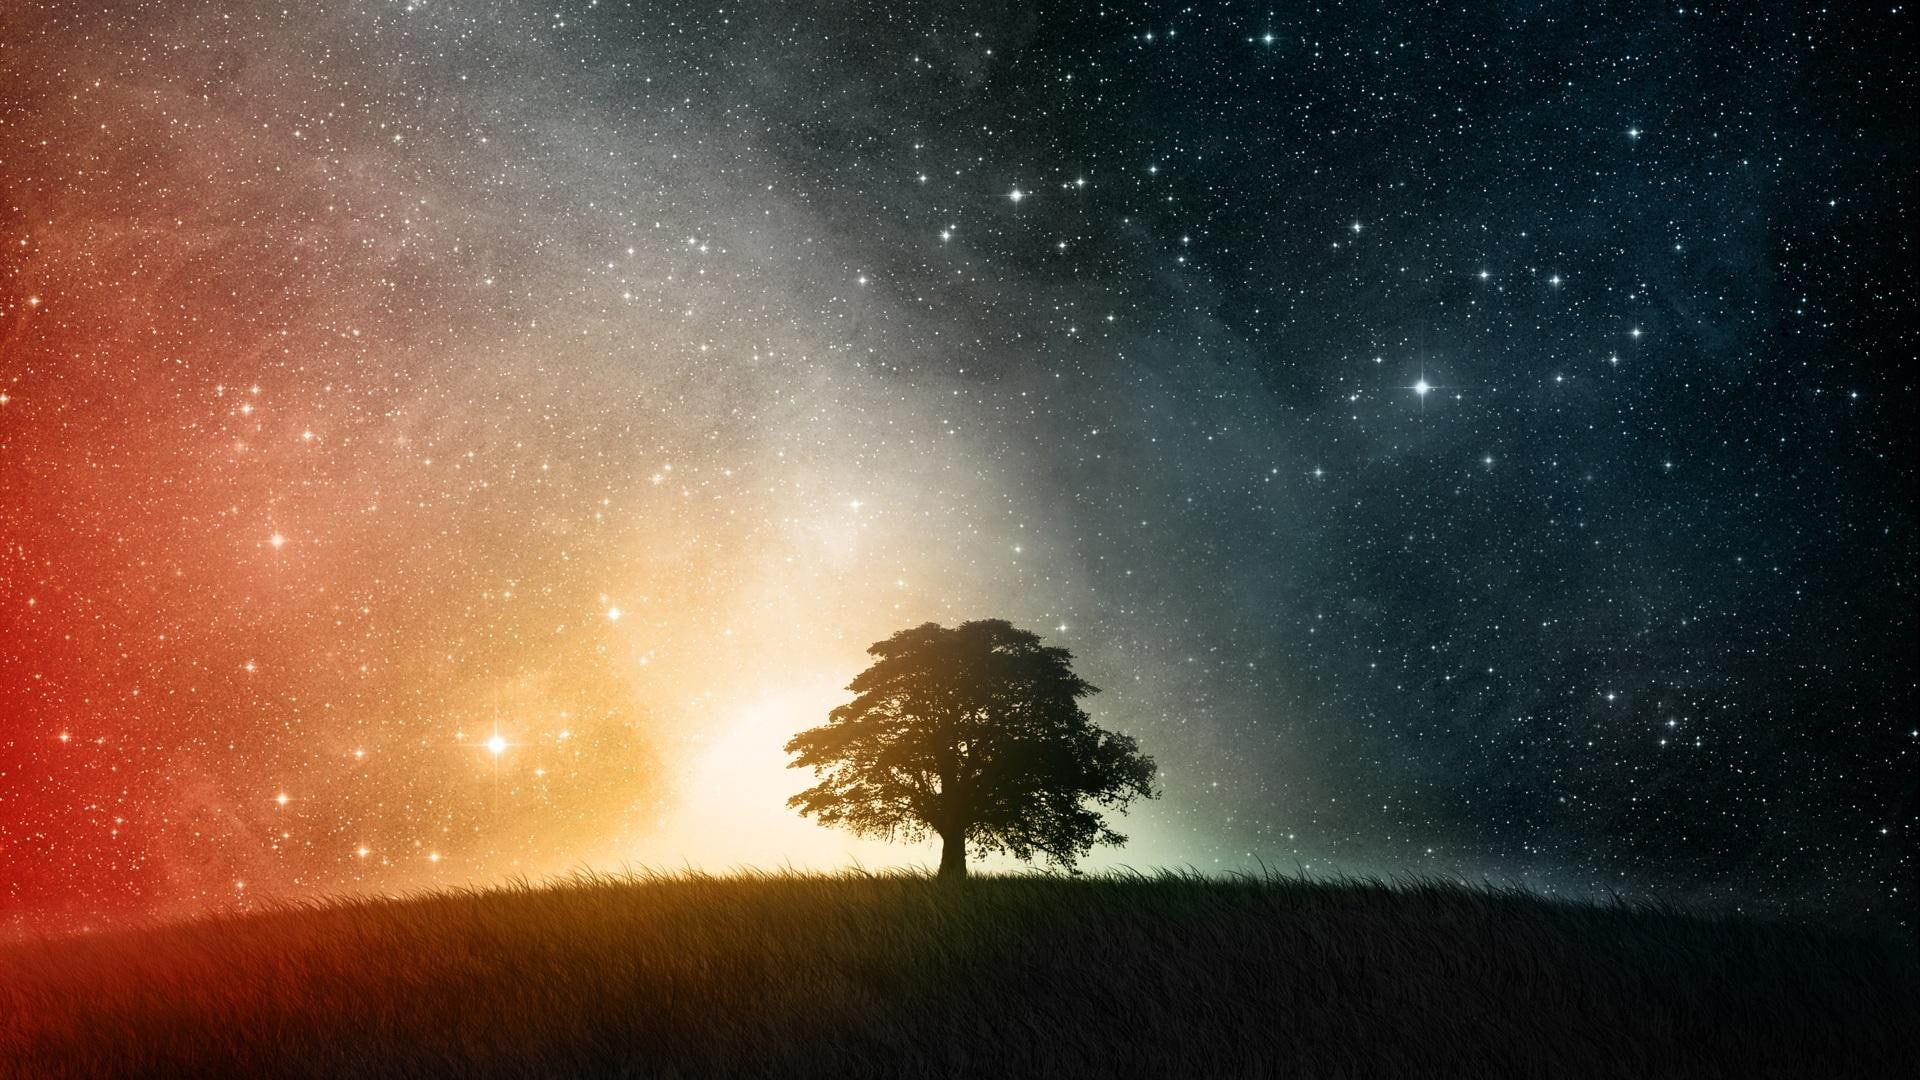 Day Vs Night Silhouette Of Grass Field With Tree Under Starry Sky Landscape Space Black Stars Land Tree Universe In 2020 Artistic Wallpaper Background Star Sky